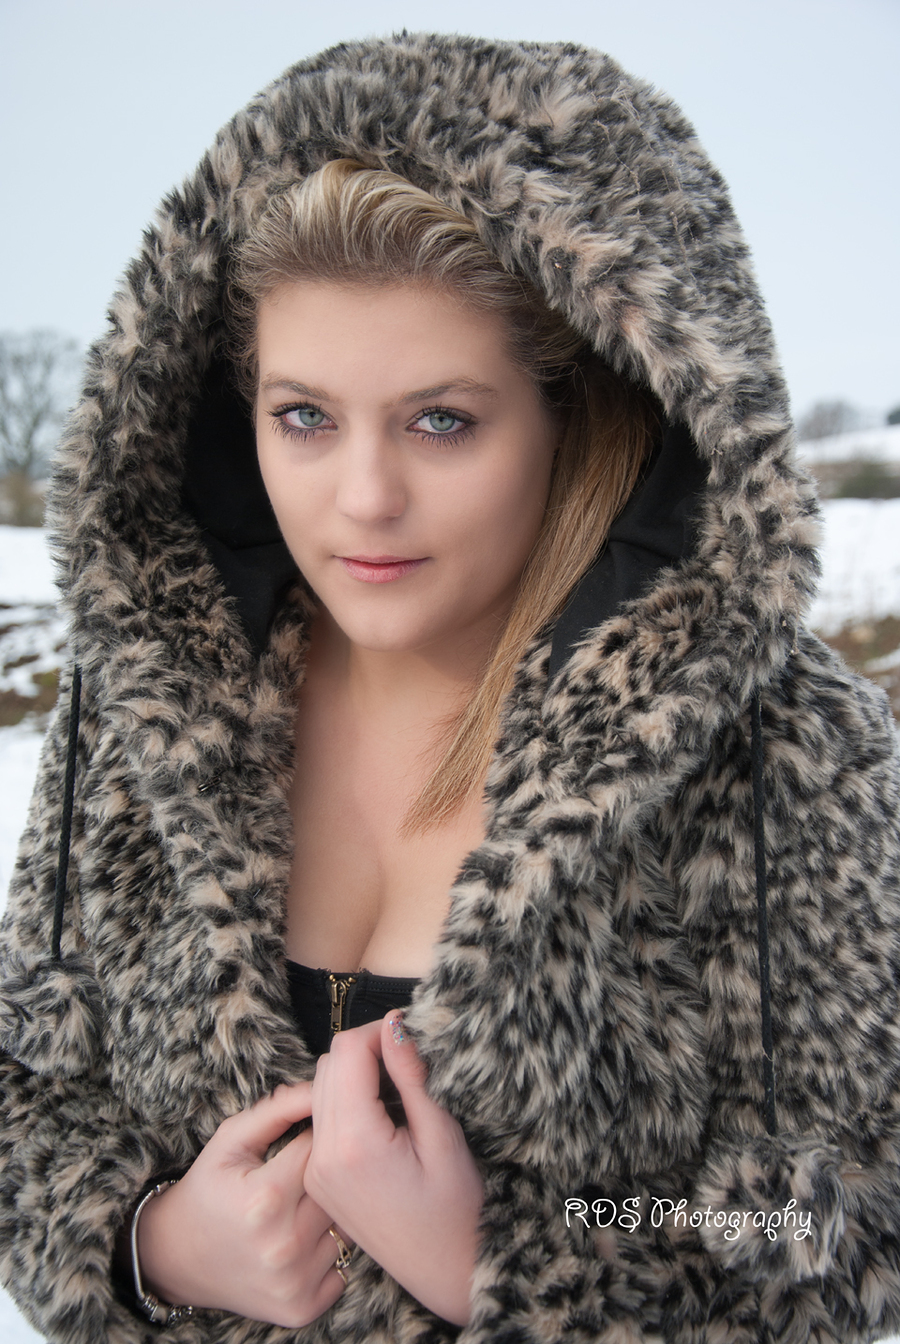 snow queen / Photography by RDS Photography / Uploaded 18th January 2013 @ 07:07 PM